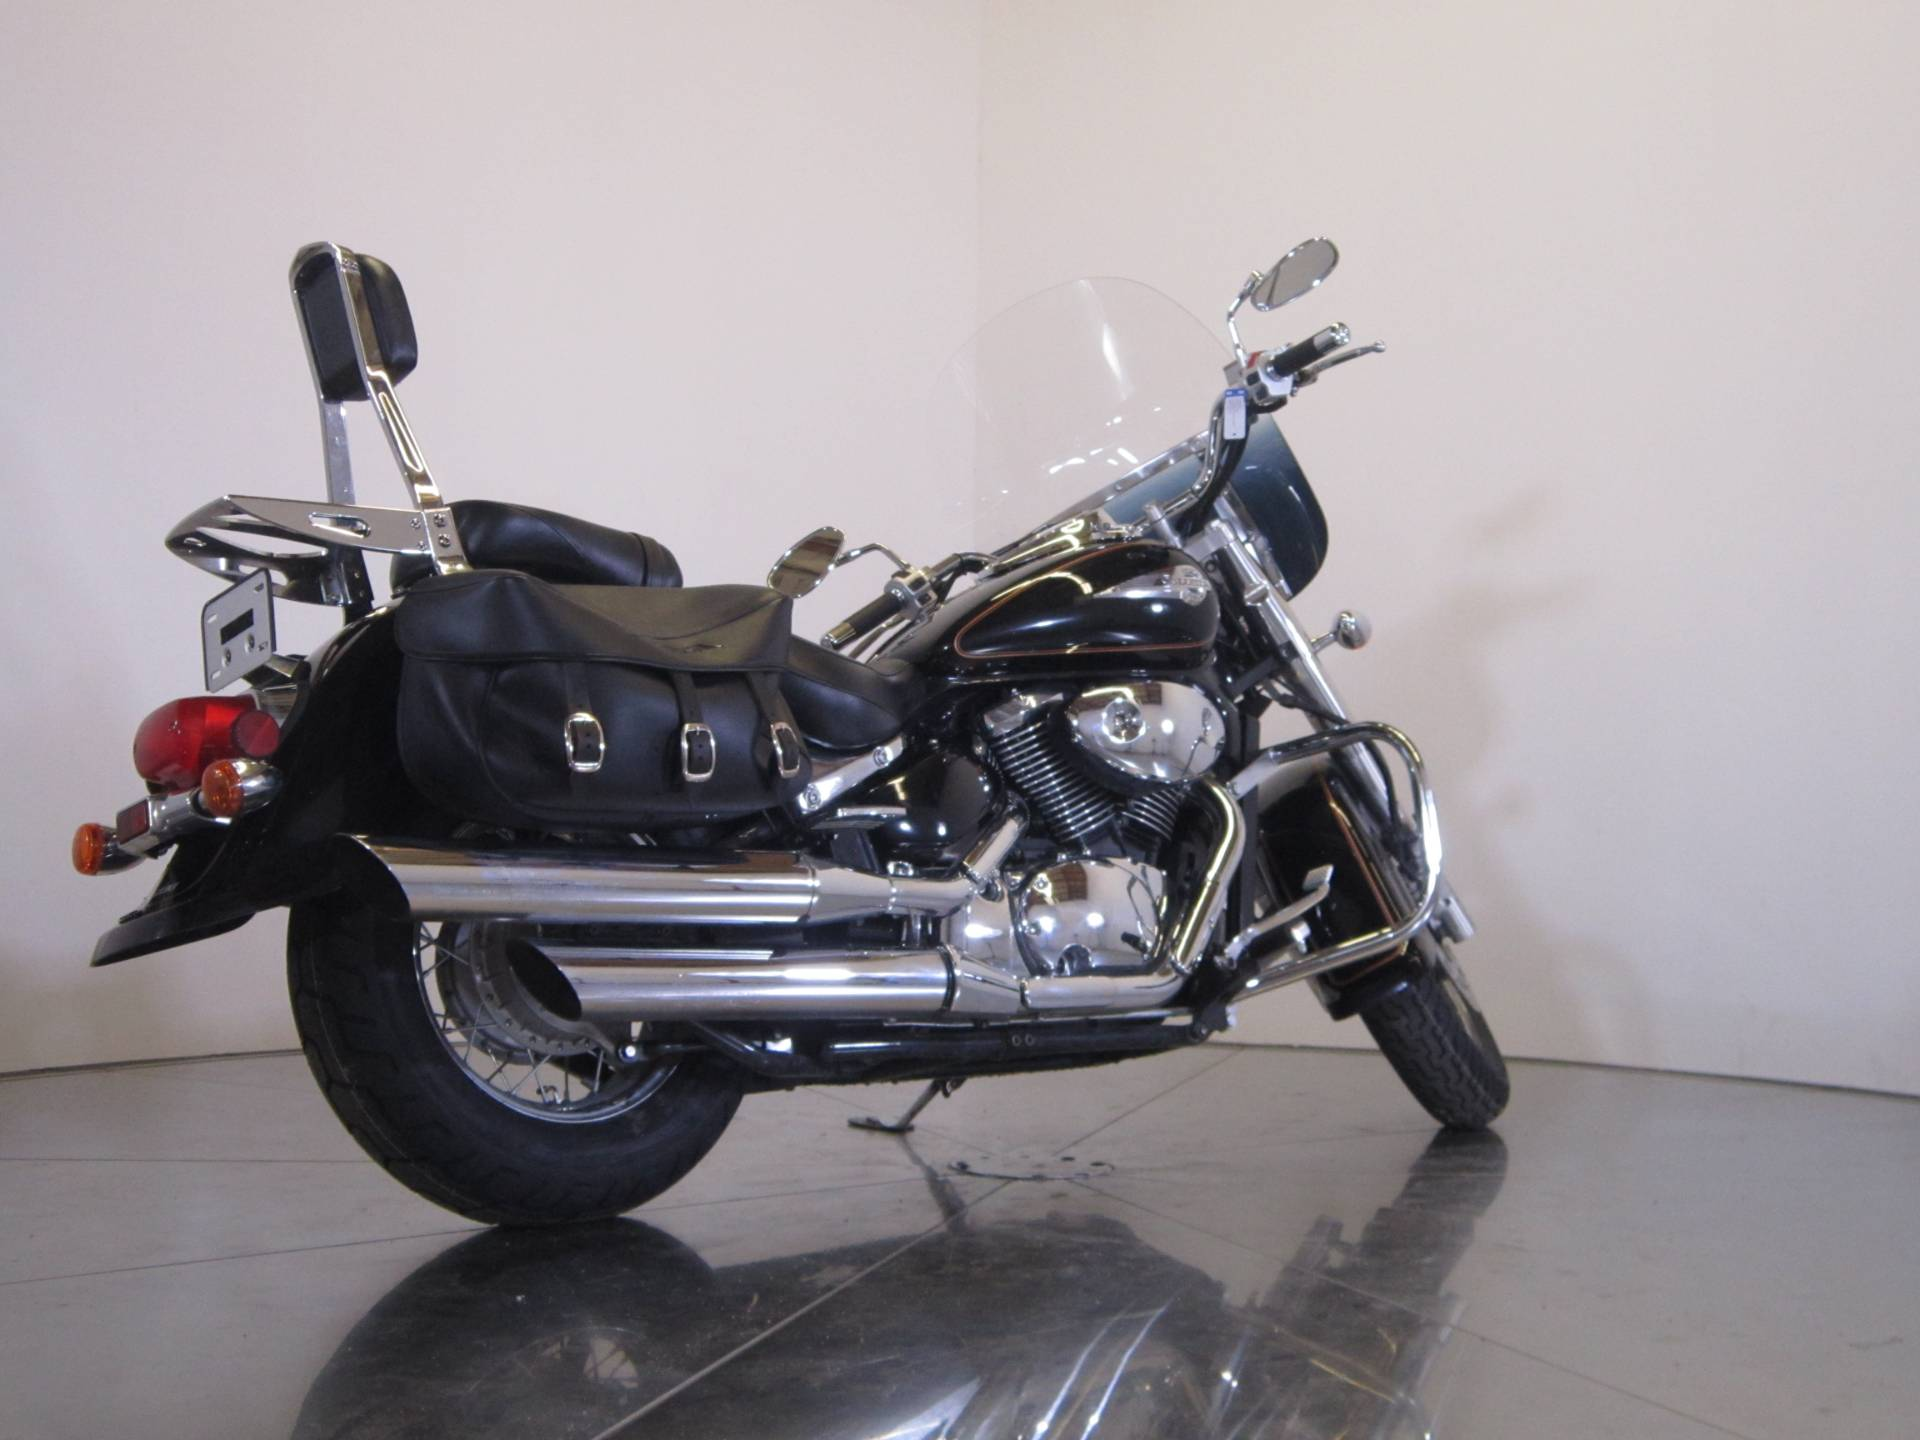 2004 Suzuki Intruder Volusia 800 8